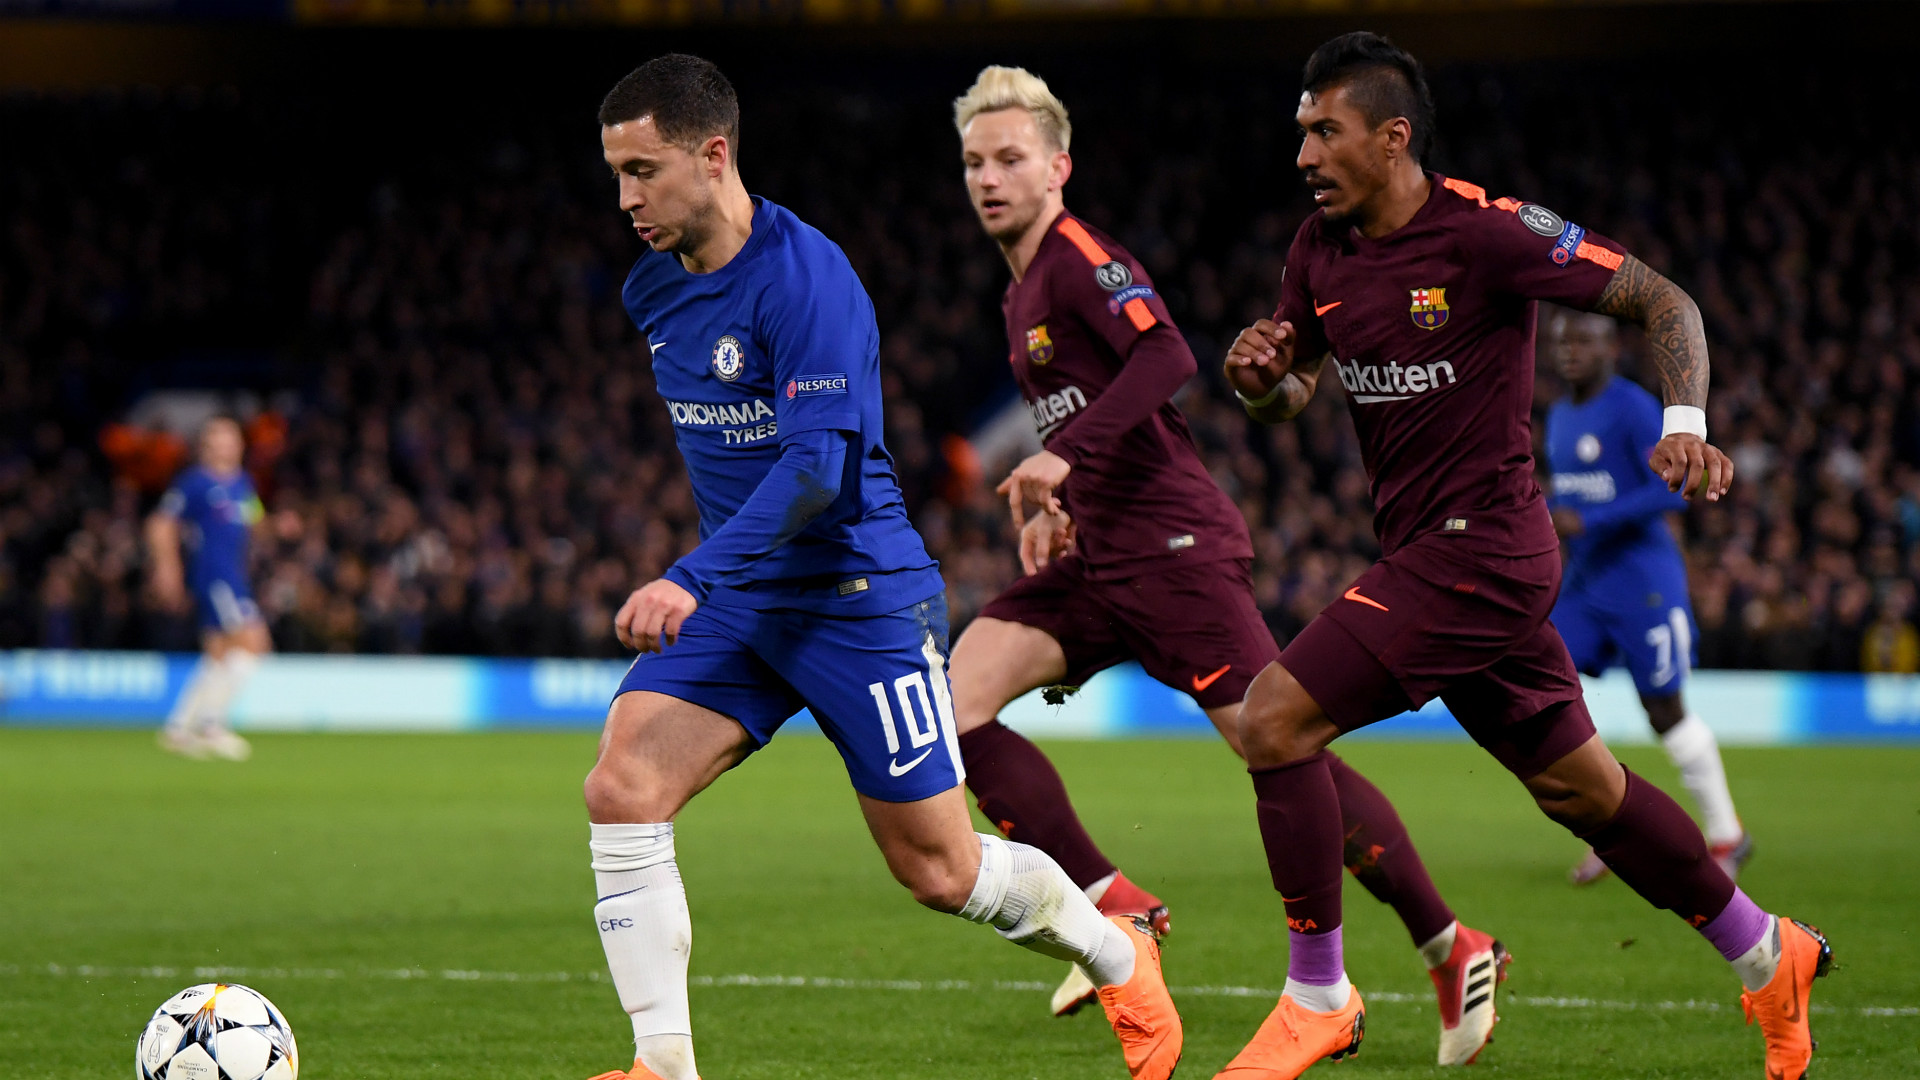 Transmisión en vivo: Barcelona vs Chelsea, Champions League 2018